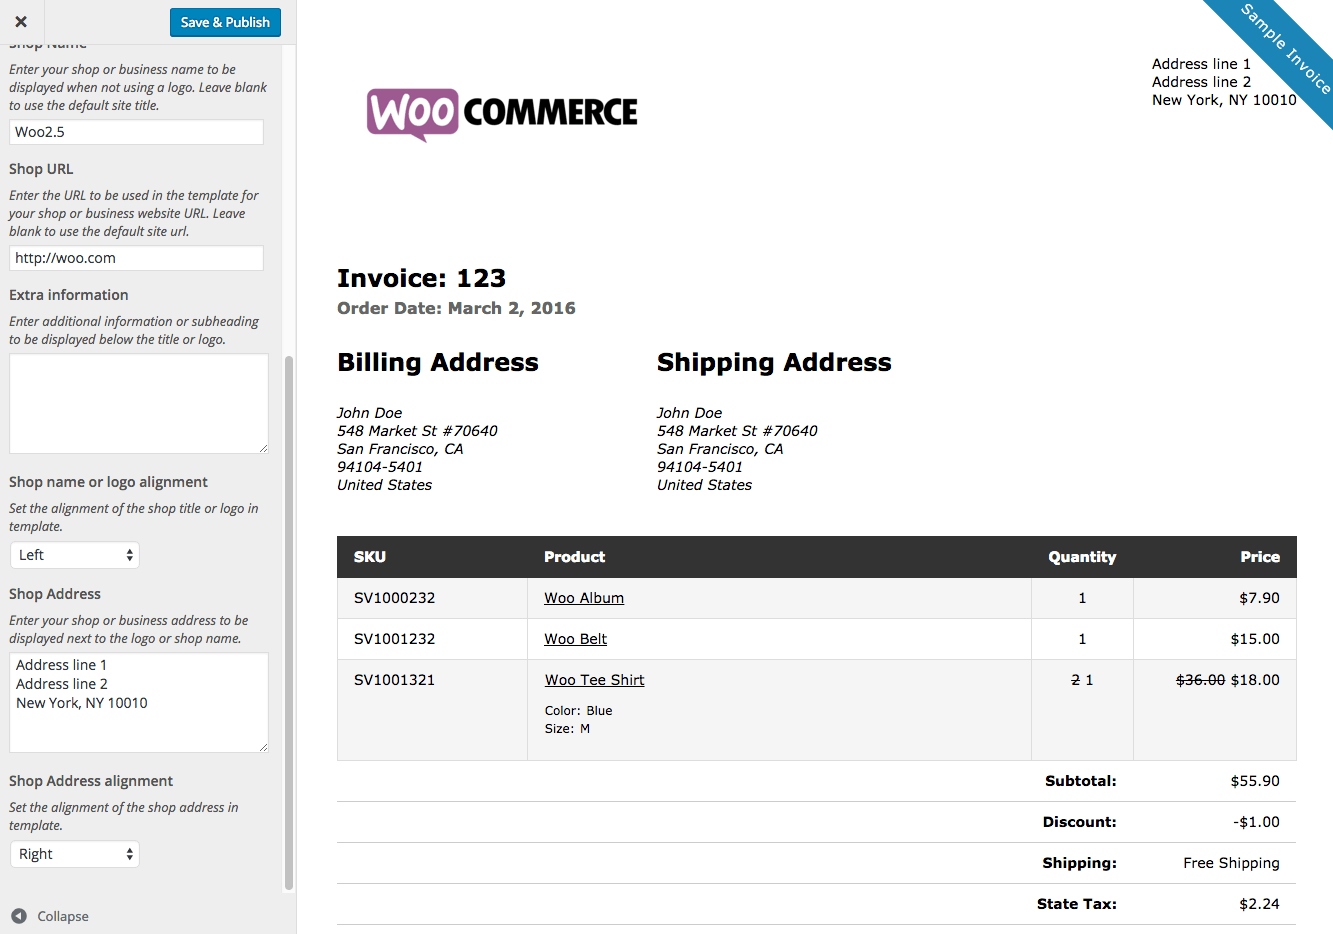 Soulfulpowerus  Mesmerizing Woocommerce Print Invoices Amp Packing Lists  Woocommerce Docs With Luxury Woocommerce Print Invoices  Packing Lists Customizer With Nice Notice Of Acknowledgment Of Receipt Also Taxi Receipt Atlanta In Addition Request Read Receipt Hotmail And Uscis Case Status Without Receipt Number As Well As Receipt And Payment Rules Additionally Staples No Receipt Return Policy From Docswoocommercecom With Soulfulpowerus  Luxury Woocommerce Print Invoices Amp Packing Lists  Woocommerce Docs With Nice Woocommerce Print Invoices  Packing Lists Customizer And Mesmerizing Notice Of Acknowledgment Of Receipt Also Taxi Receipt Atlanta In Addition Request Read Receipt Hotmail From Docswoocommercecom